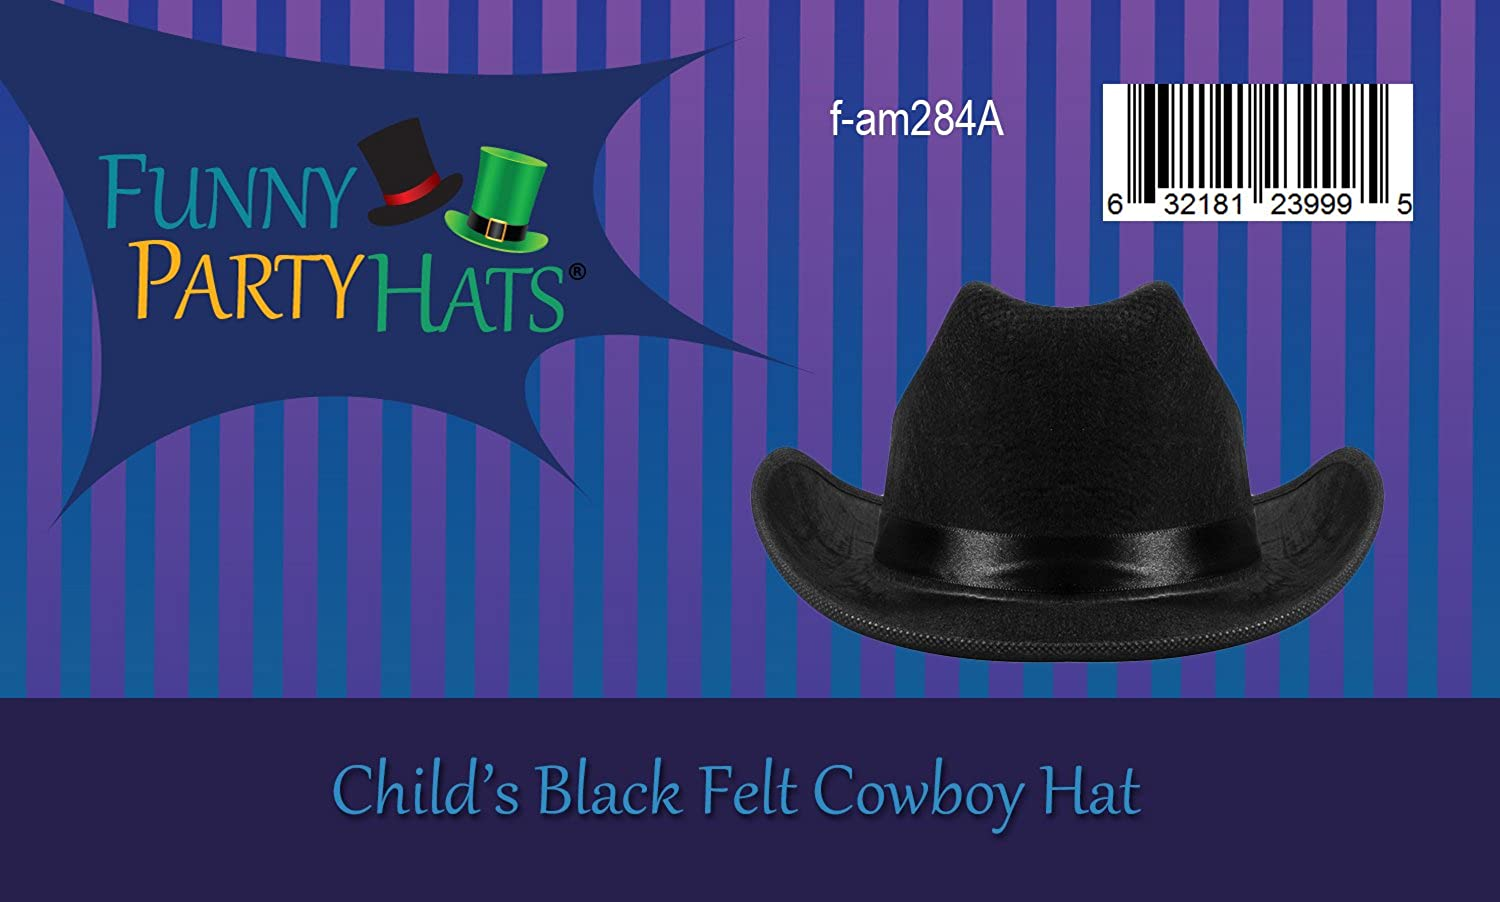 4dbb6c07a78 Amazon.com  Cowboy Hat - Black Cowboy Hat for Kids - Western Cowboy Hat -  Rodeo Costume Hat by Funny Party Hats  Clothing